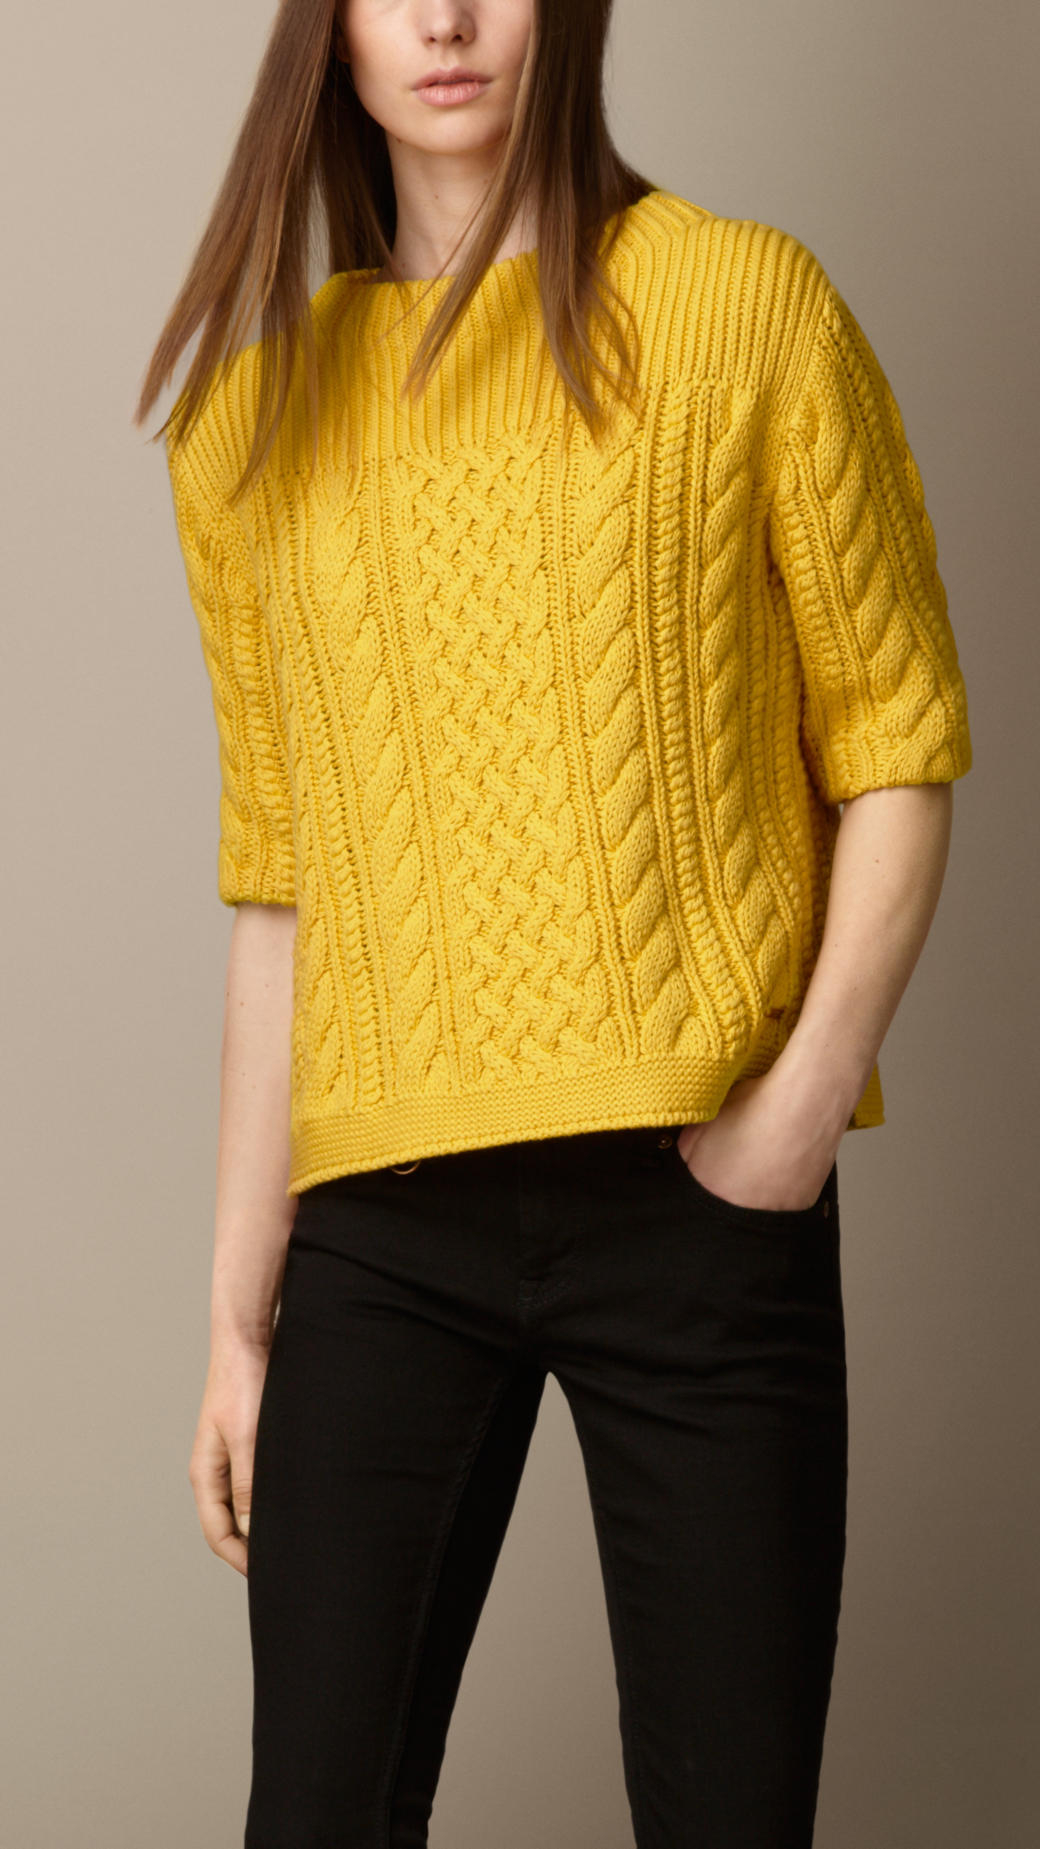 Sweater Knit : Lyst burberry cotton blend cable knit sweater in yellow